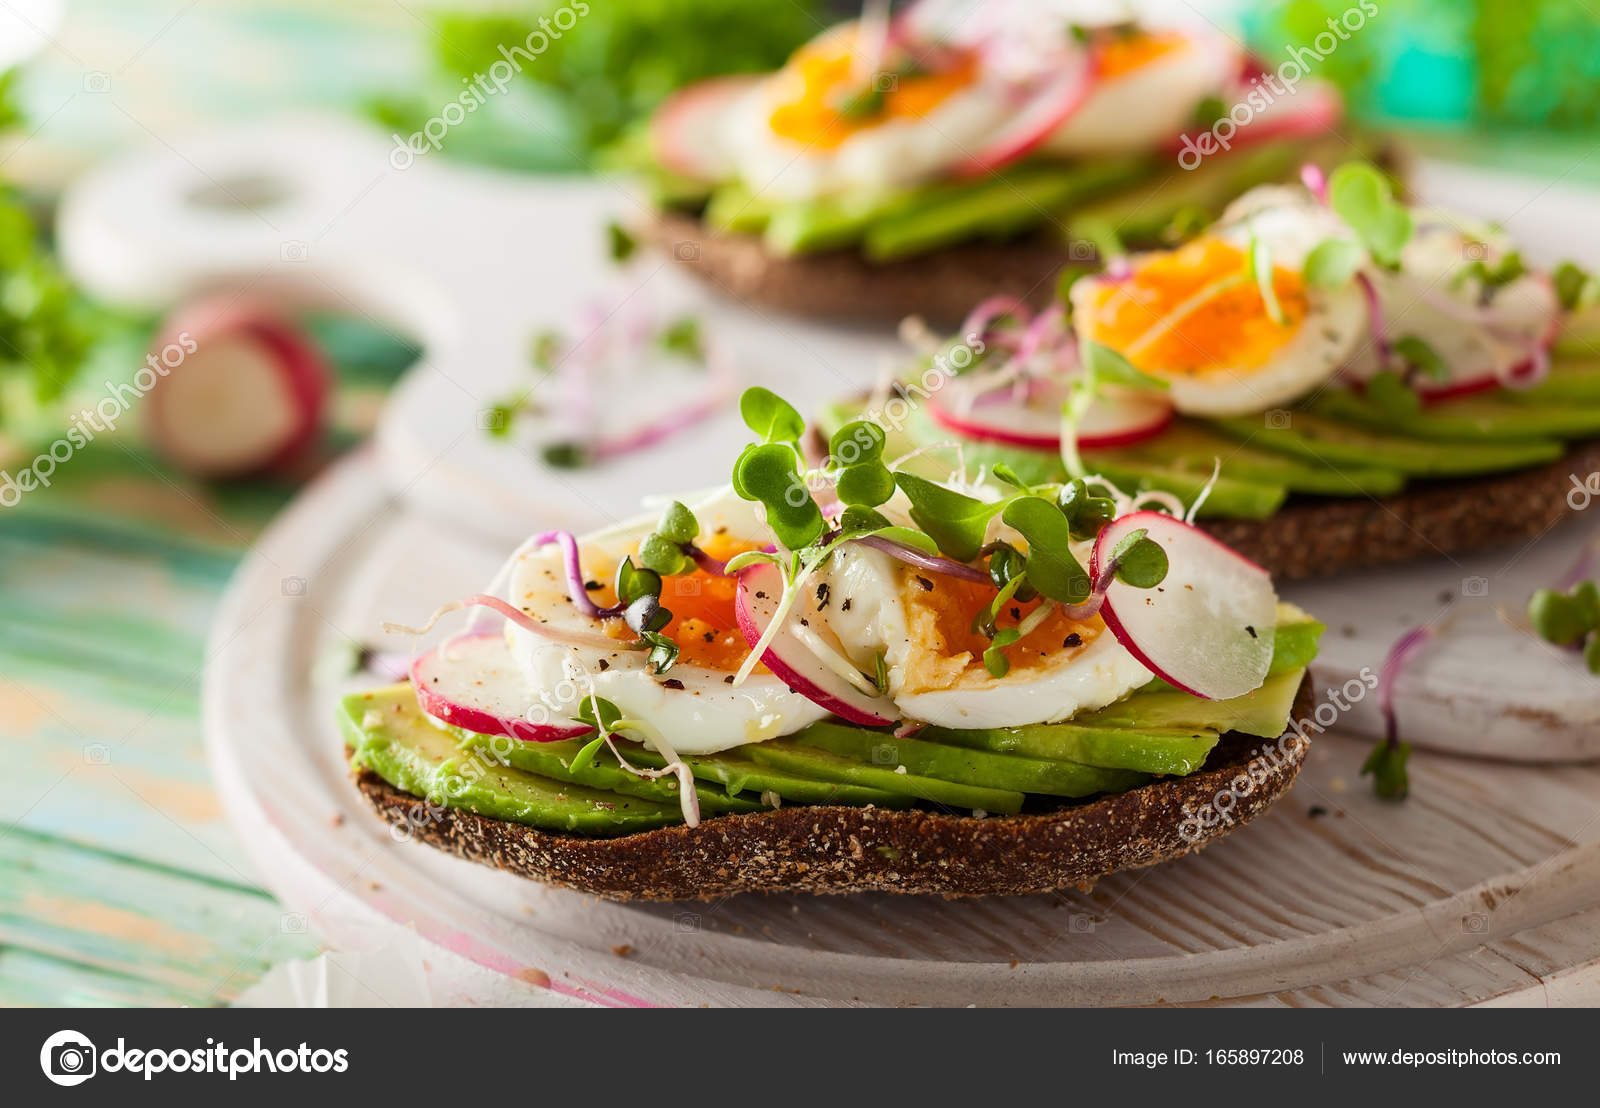 Broodje Avocado Ei Open Broodjes Met Avocado En Ei Stockfoto Sarsmis 165897208